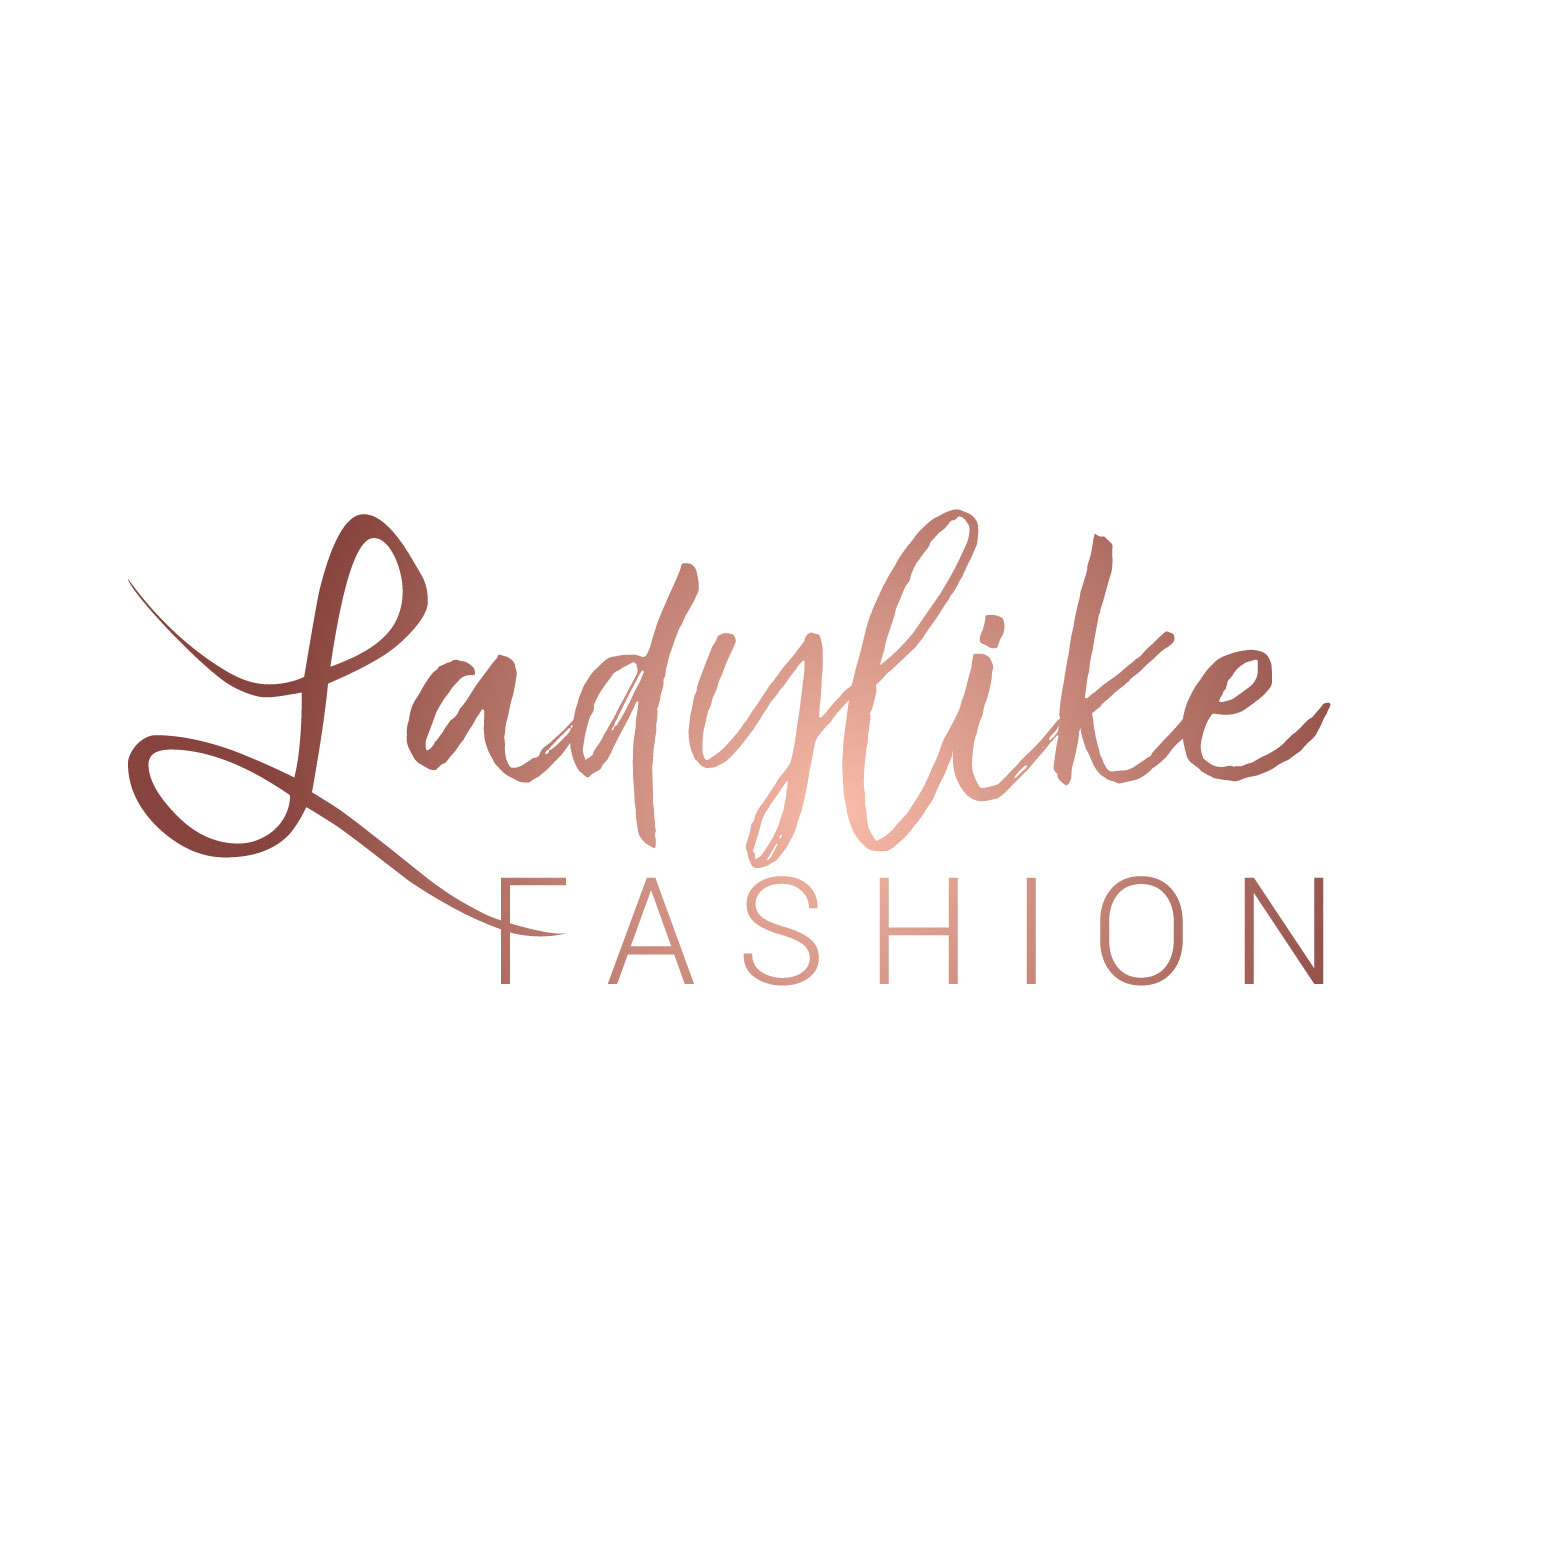 LADYLIKE FASHION